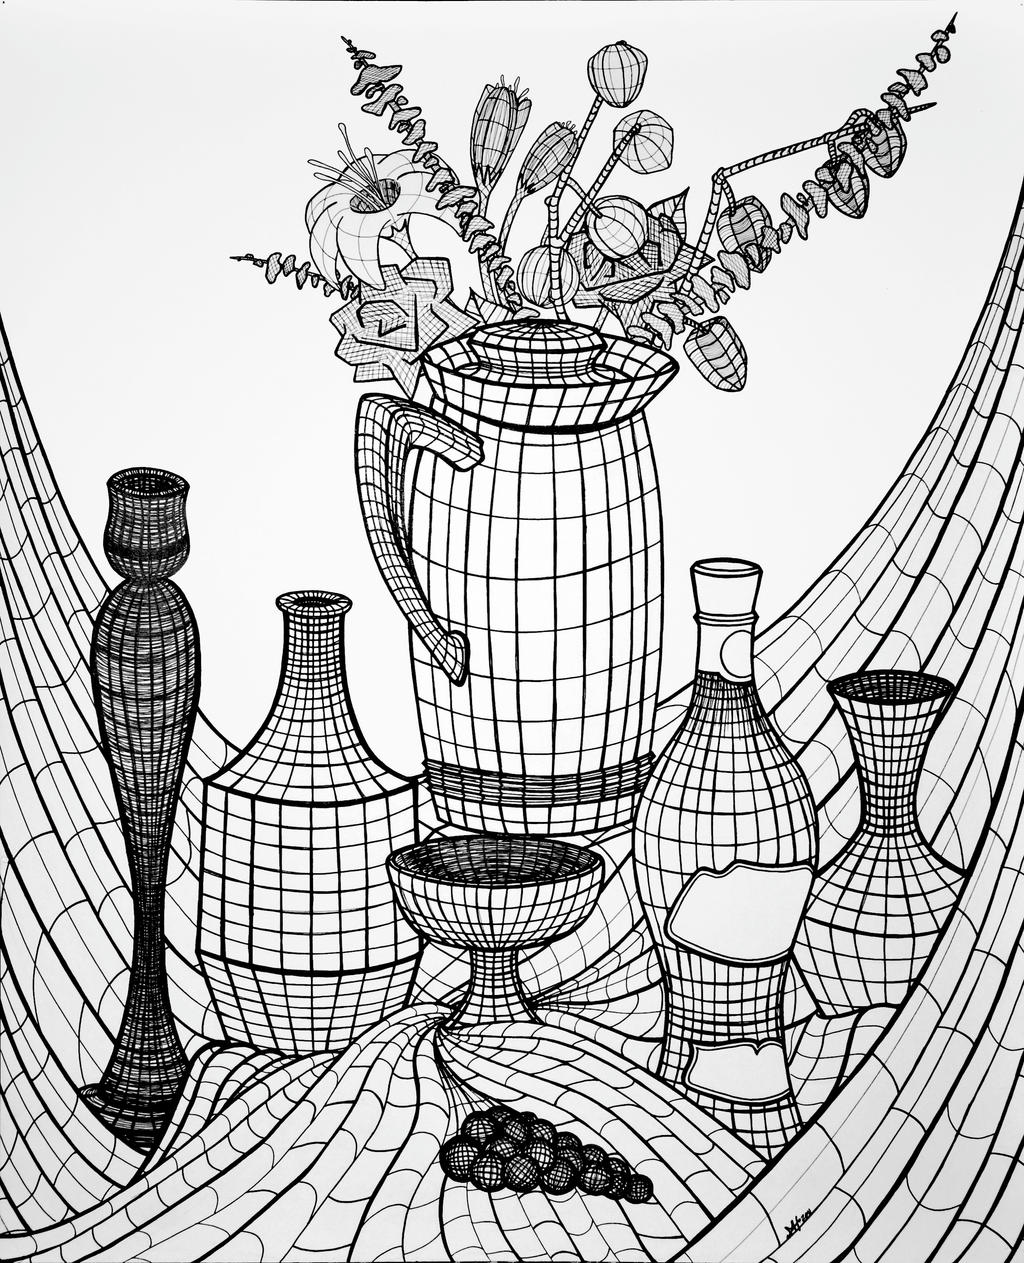 Line Art Using Photo : Still life topographic composition by monicaholsinger on